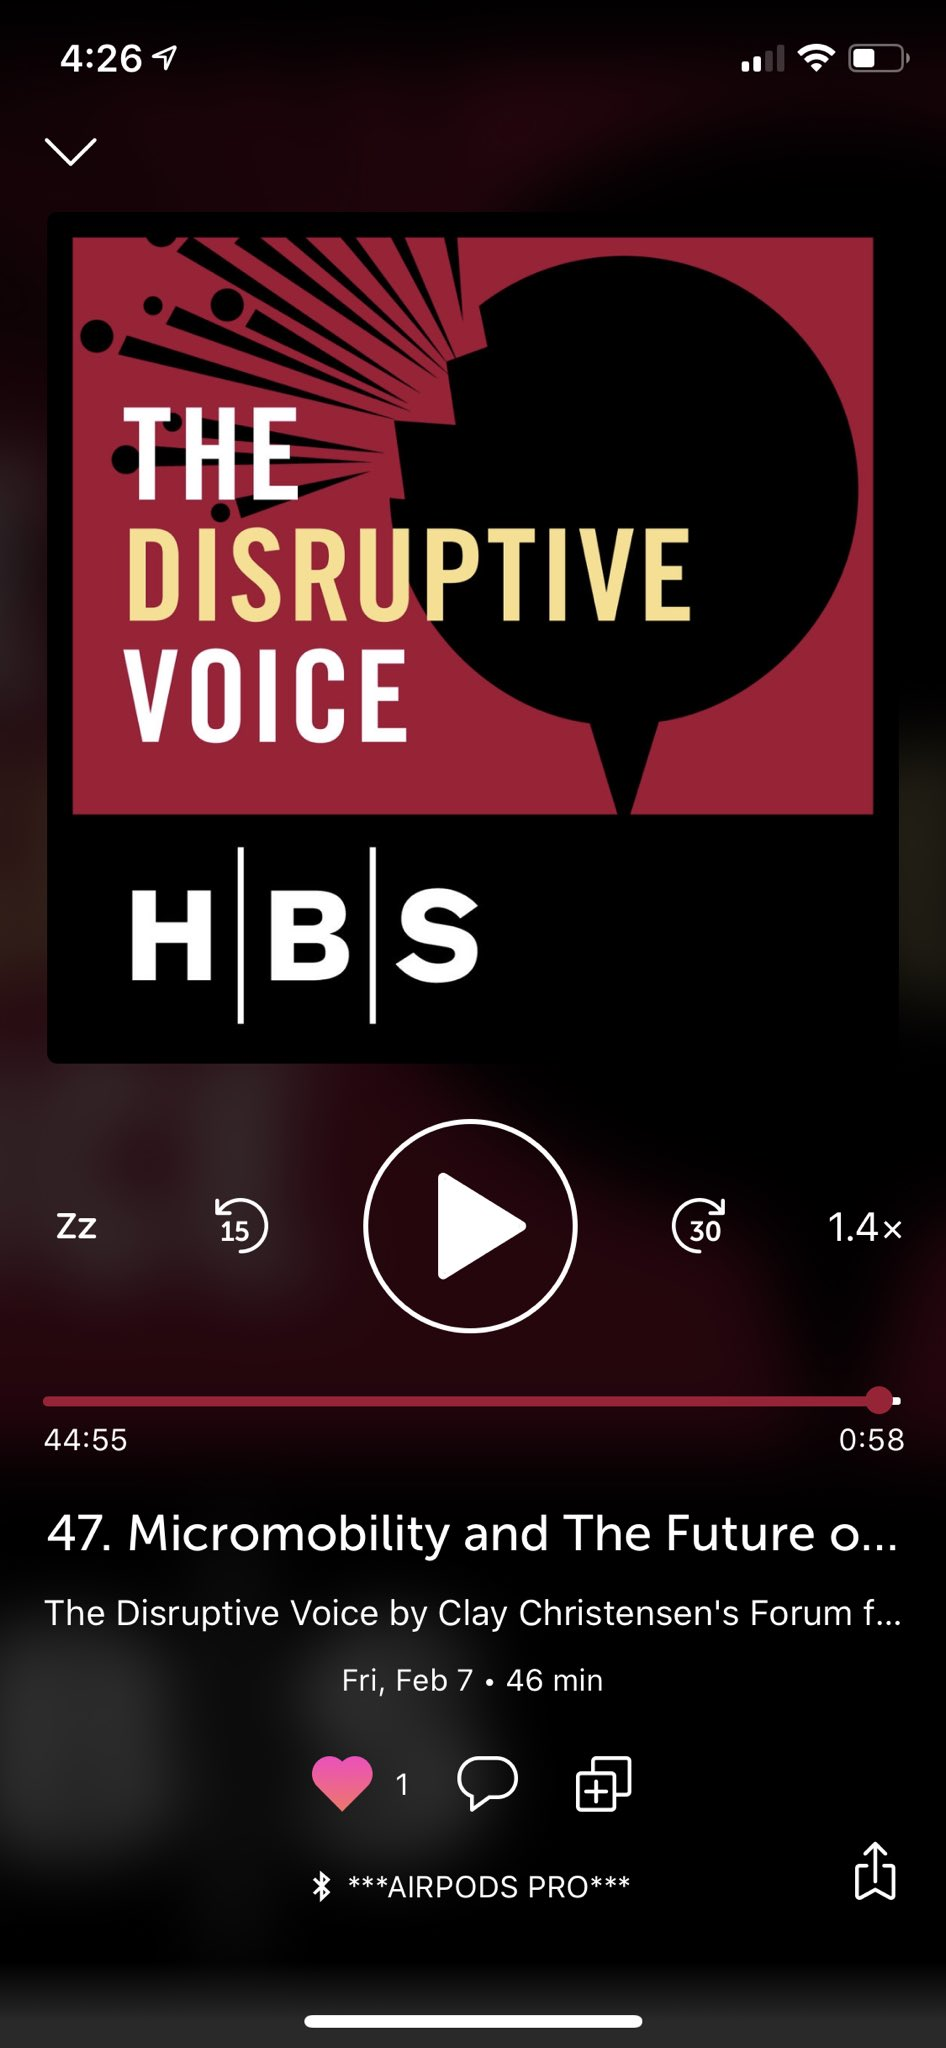 Can't believe I'd never heard this from Horace (@asymco) yet. His interview with Katie Zandbergen (not on Twitter) is one of the best podcasts I've ever heard. https://t.co/SlZQE2K8XA